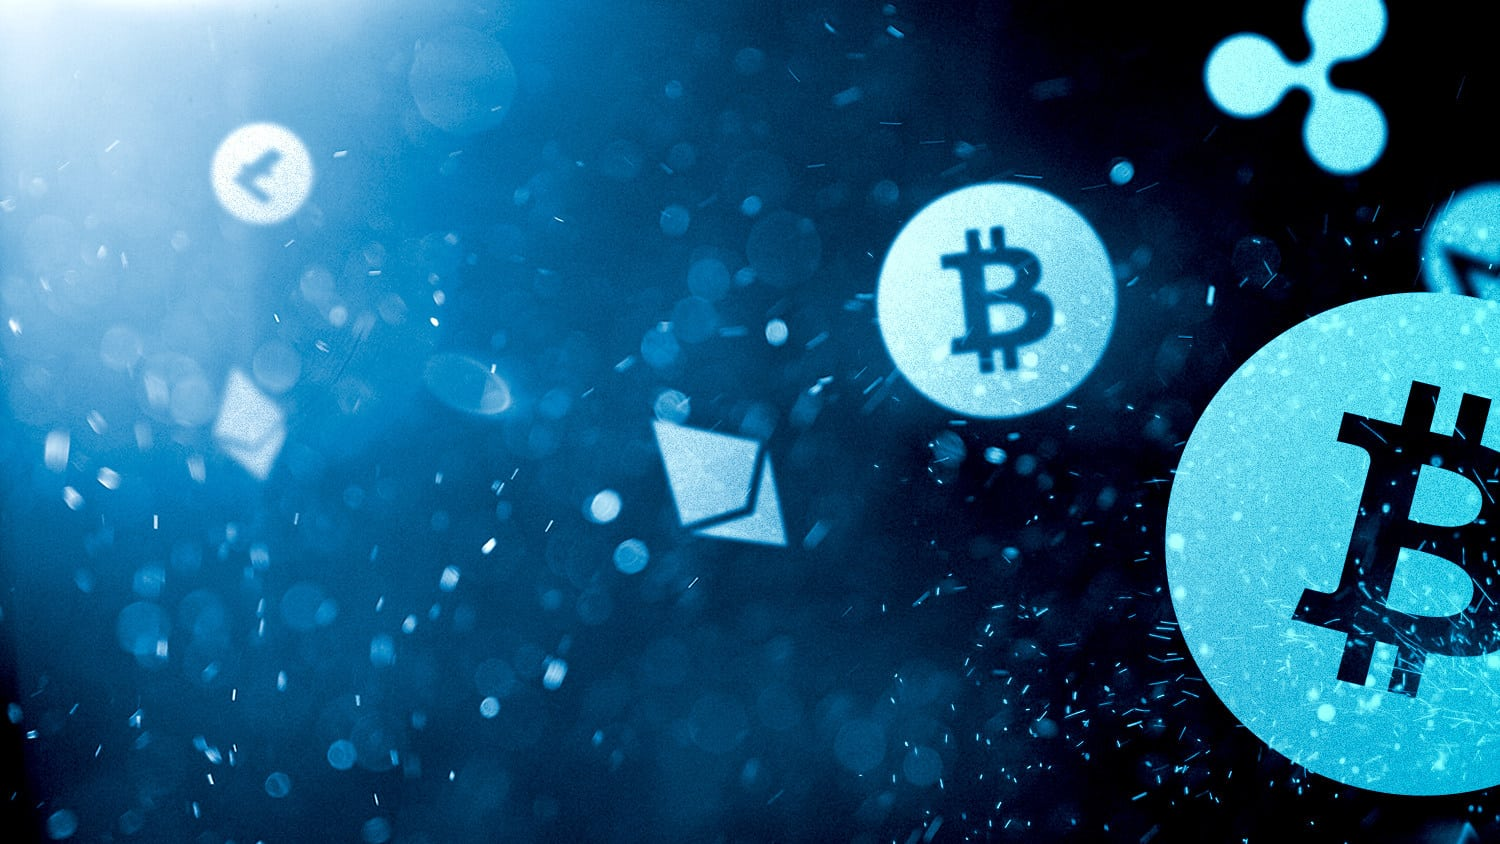 services-in-the-crypto-industry-are-becoming-popular